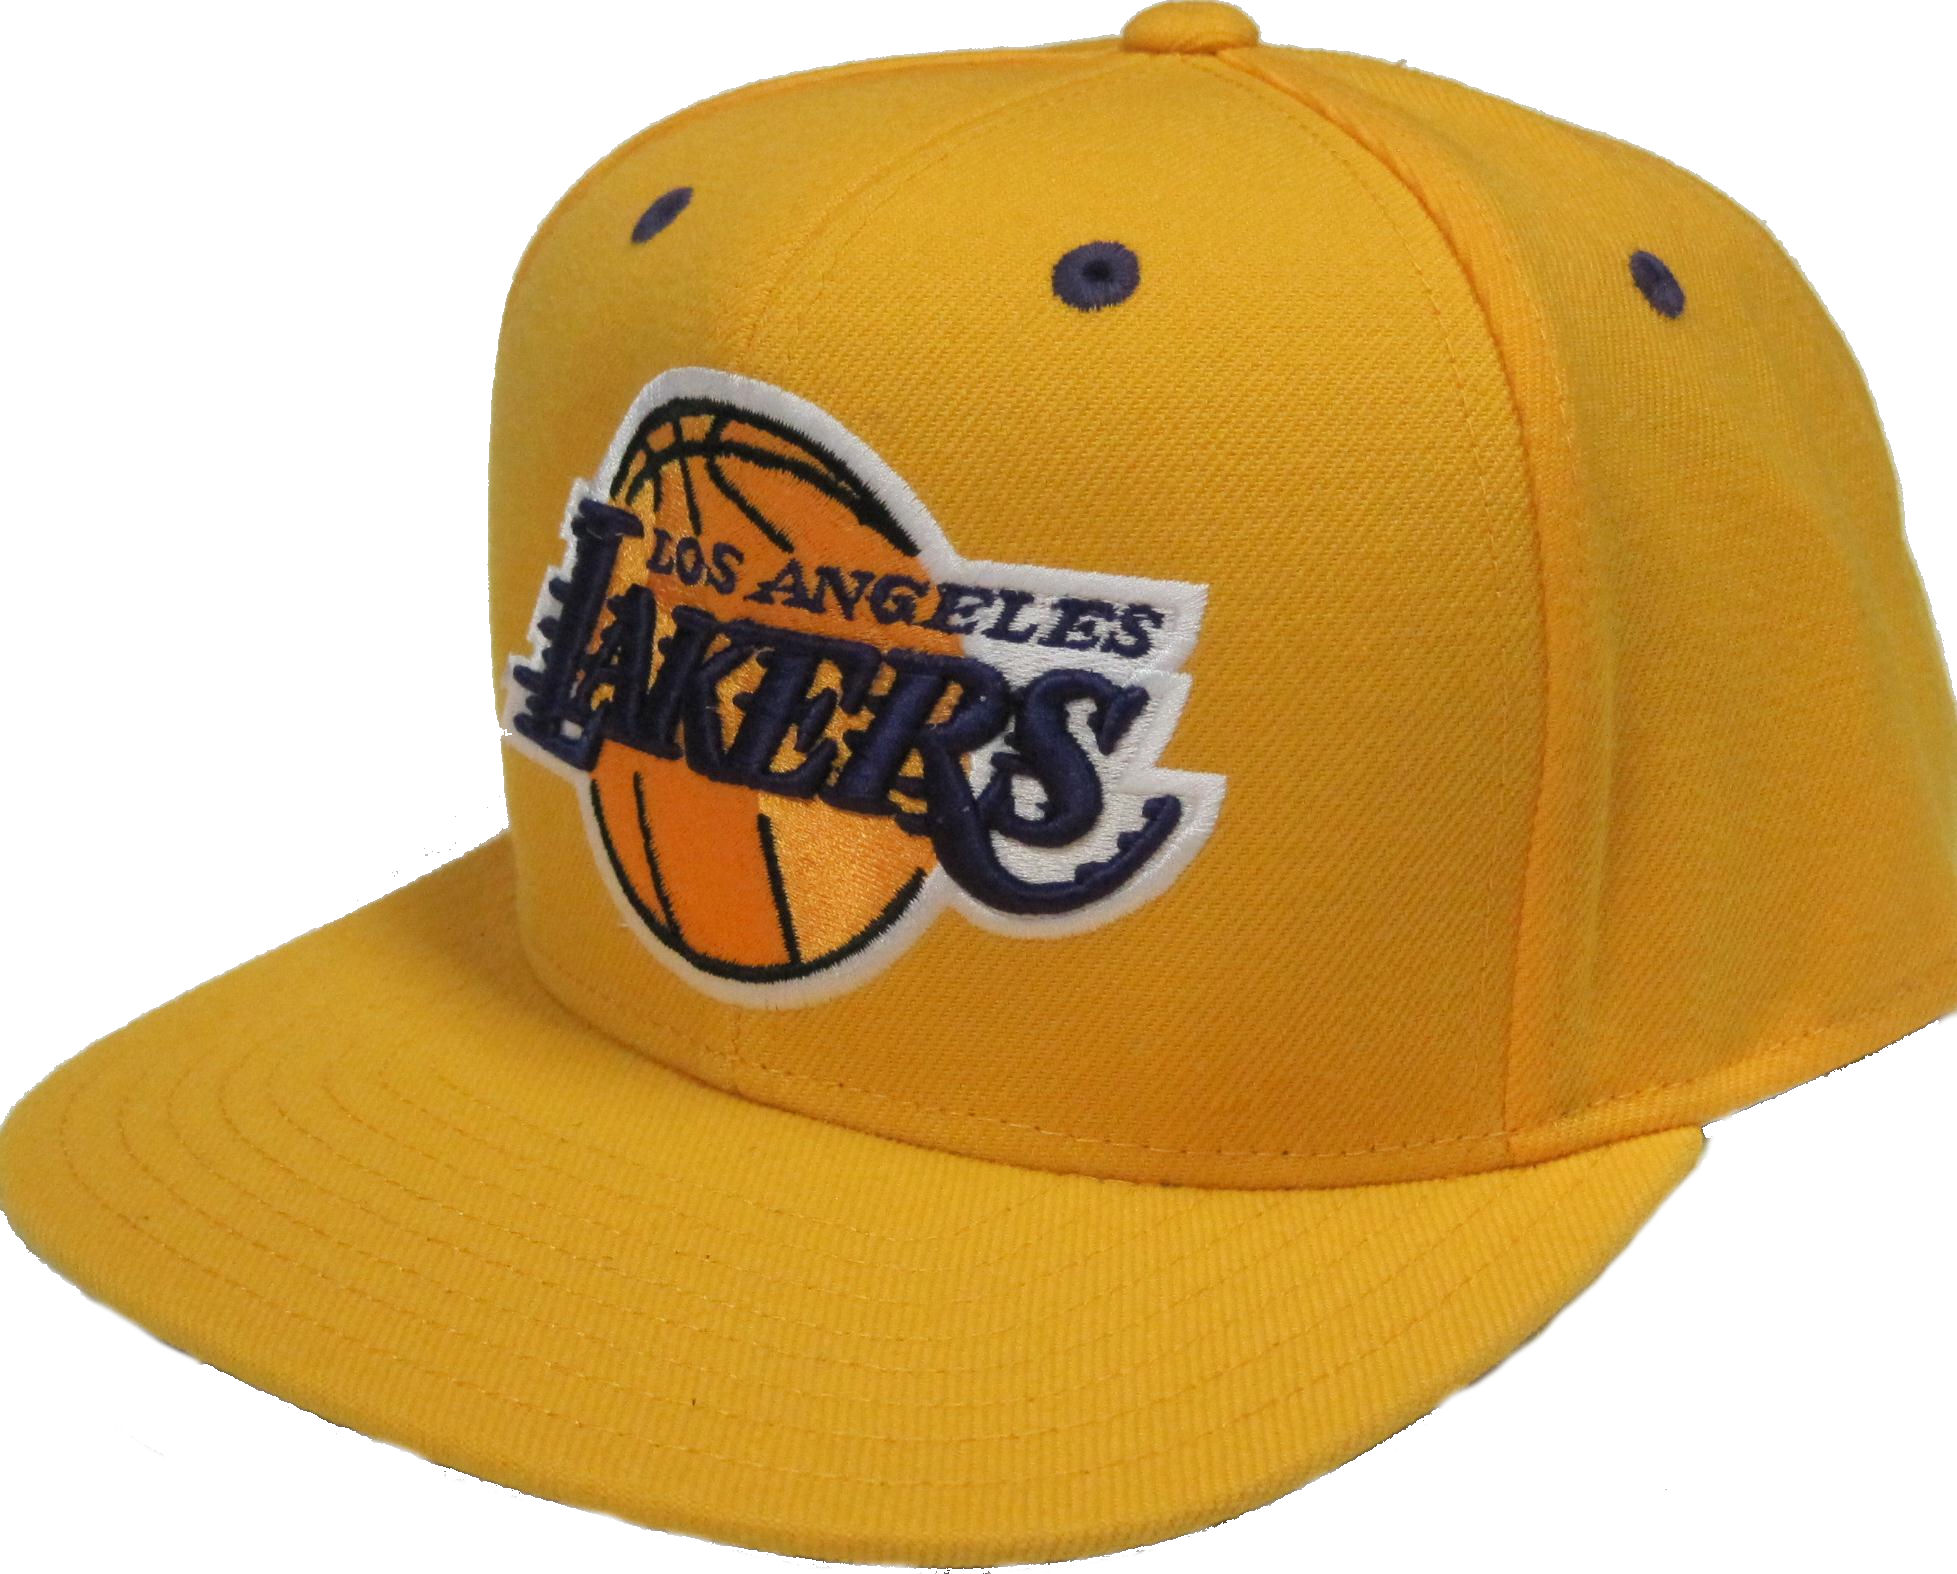 Lakers Hats – Tag Hats 2eace71c8e4